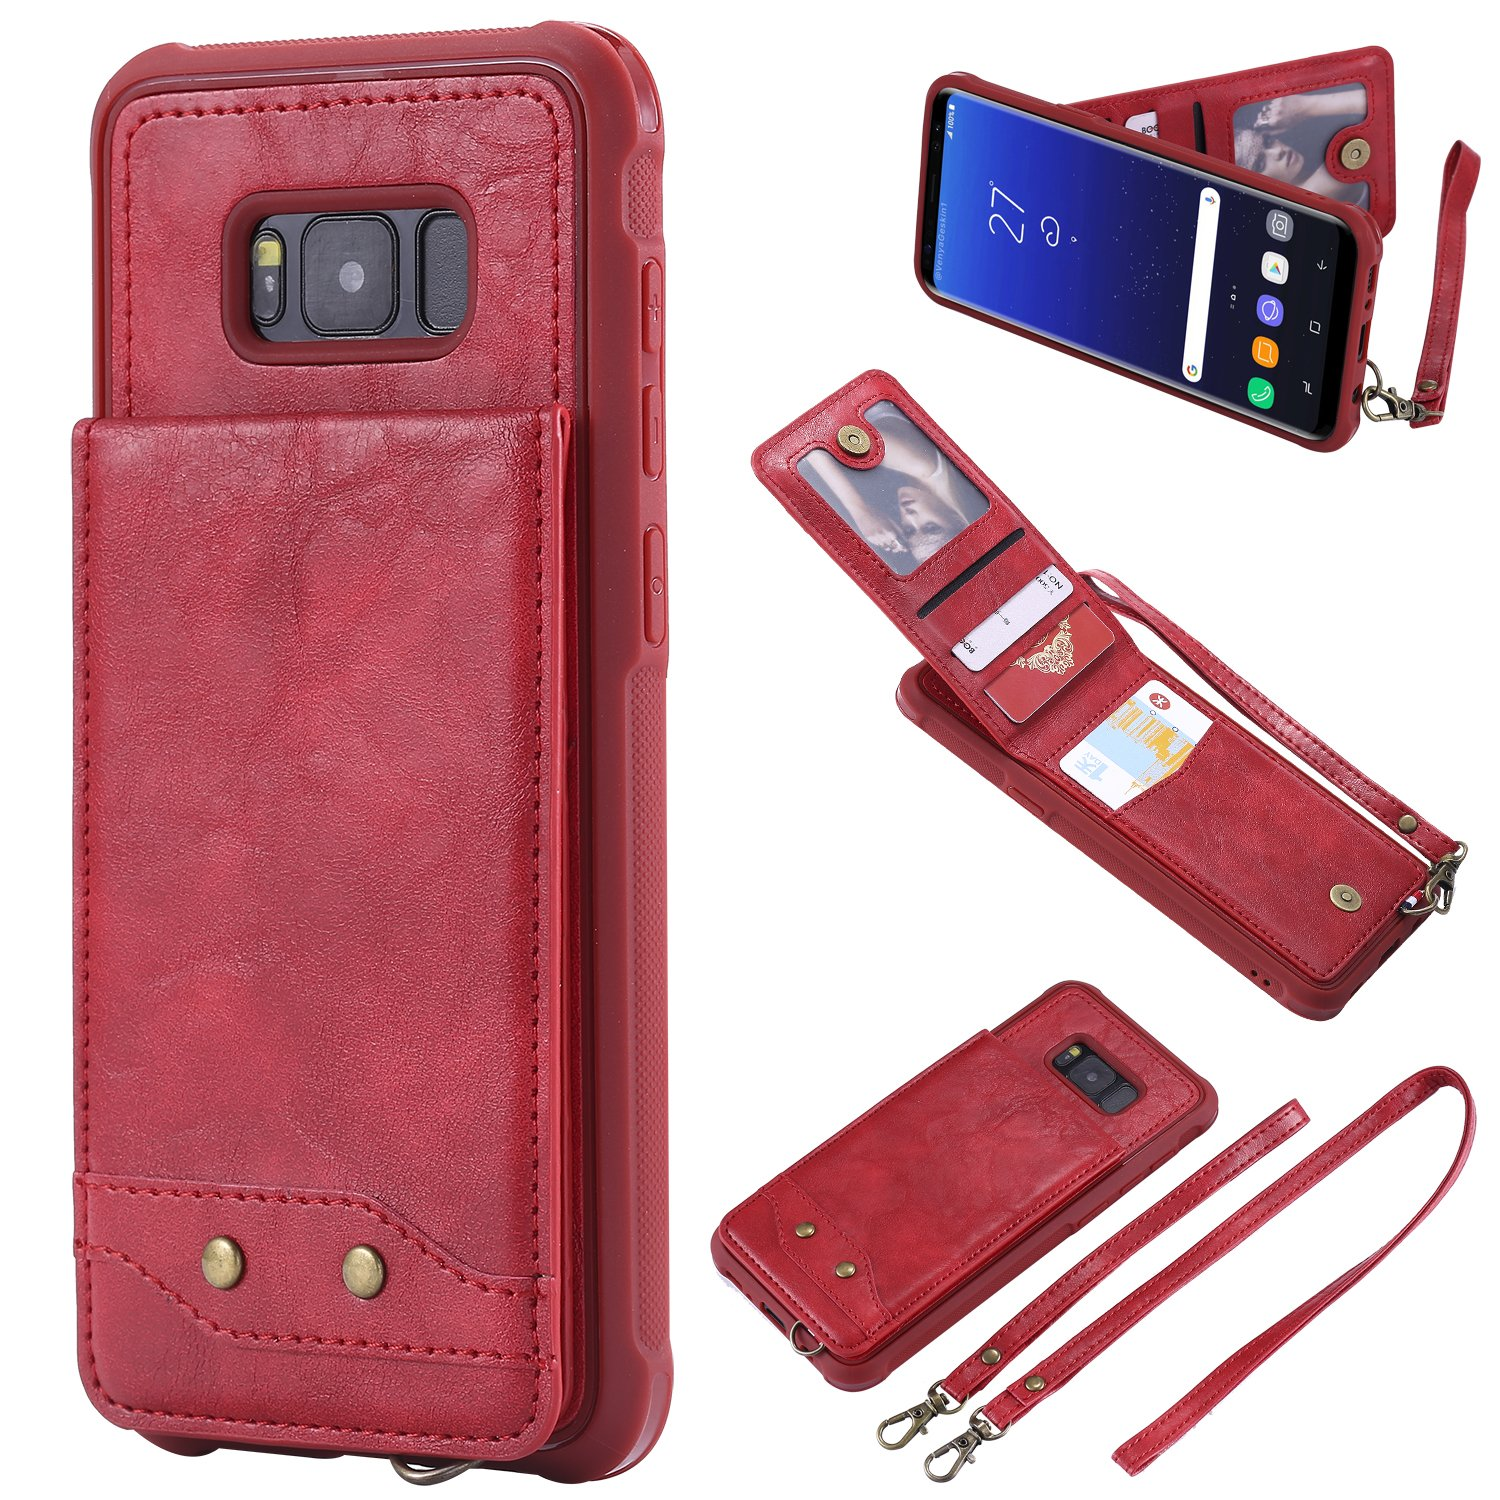 DAMONDY Galaxy S8 Plus Case, Luxury Wallet Purse Card Holders Design Cover Soft Shockproof Bumper Flip Leather Kickstand Magnetic Clasp With Wrist Strap Case for Samsung Galaxy S8 Plus-red